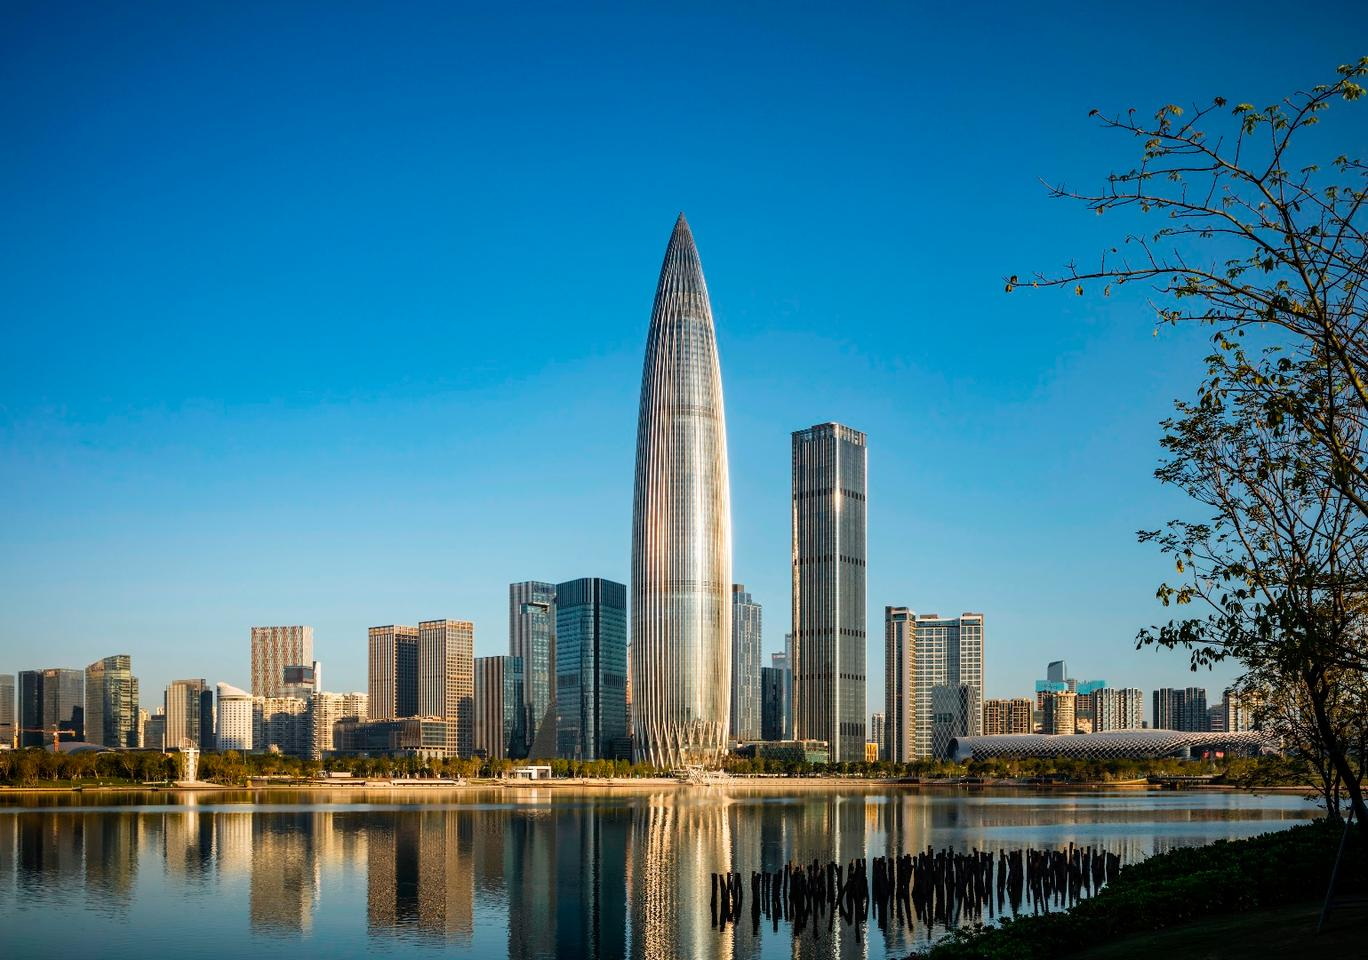 The China Resources Headquarters, by KPF, is located in Shenzhen, China, and rises to a height of 400 m (1,312 ft)